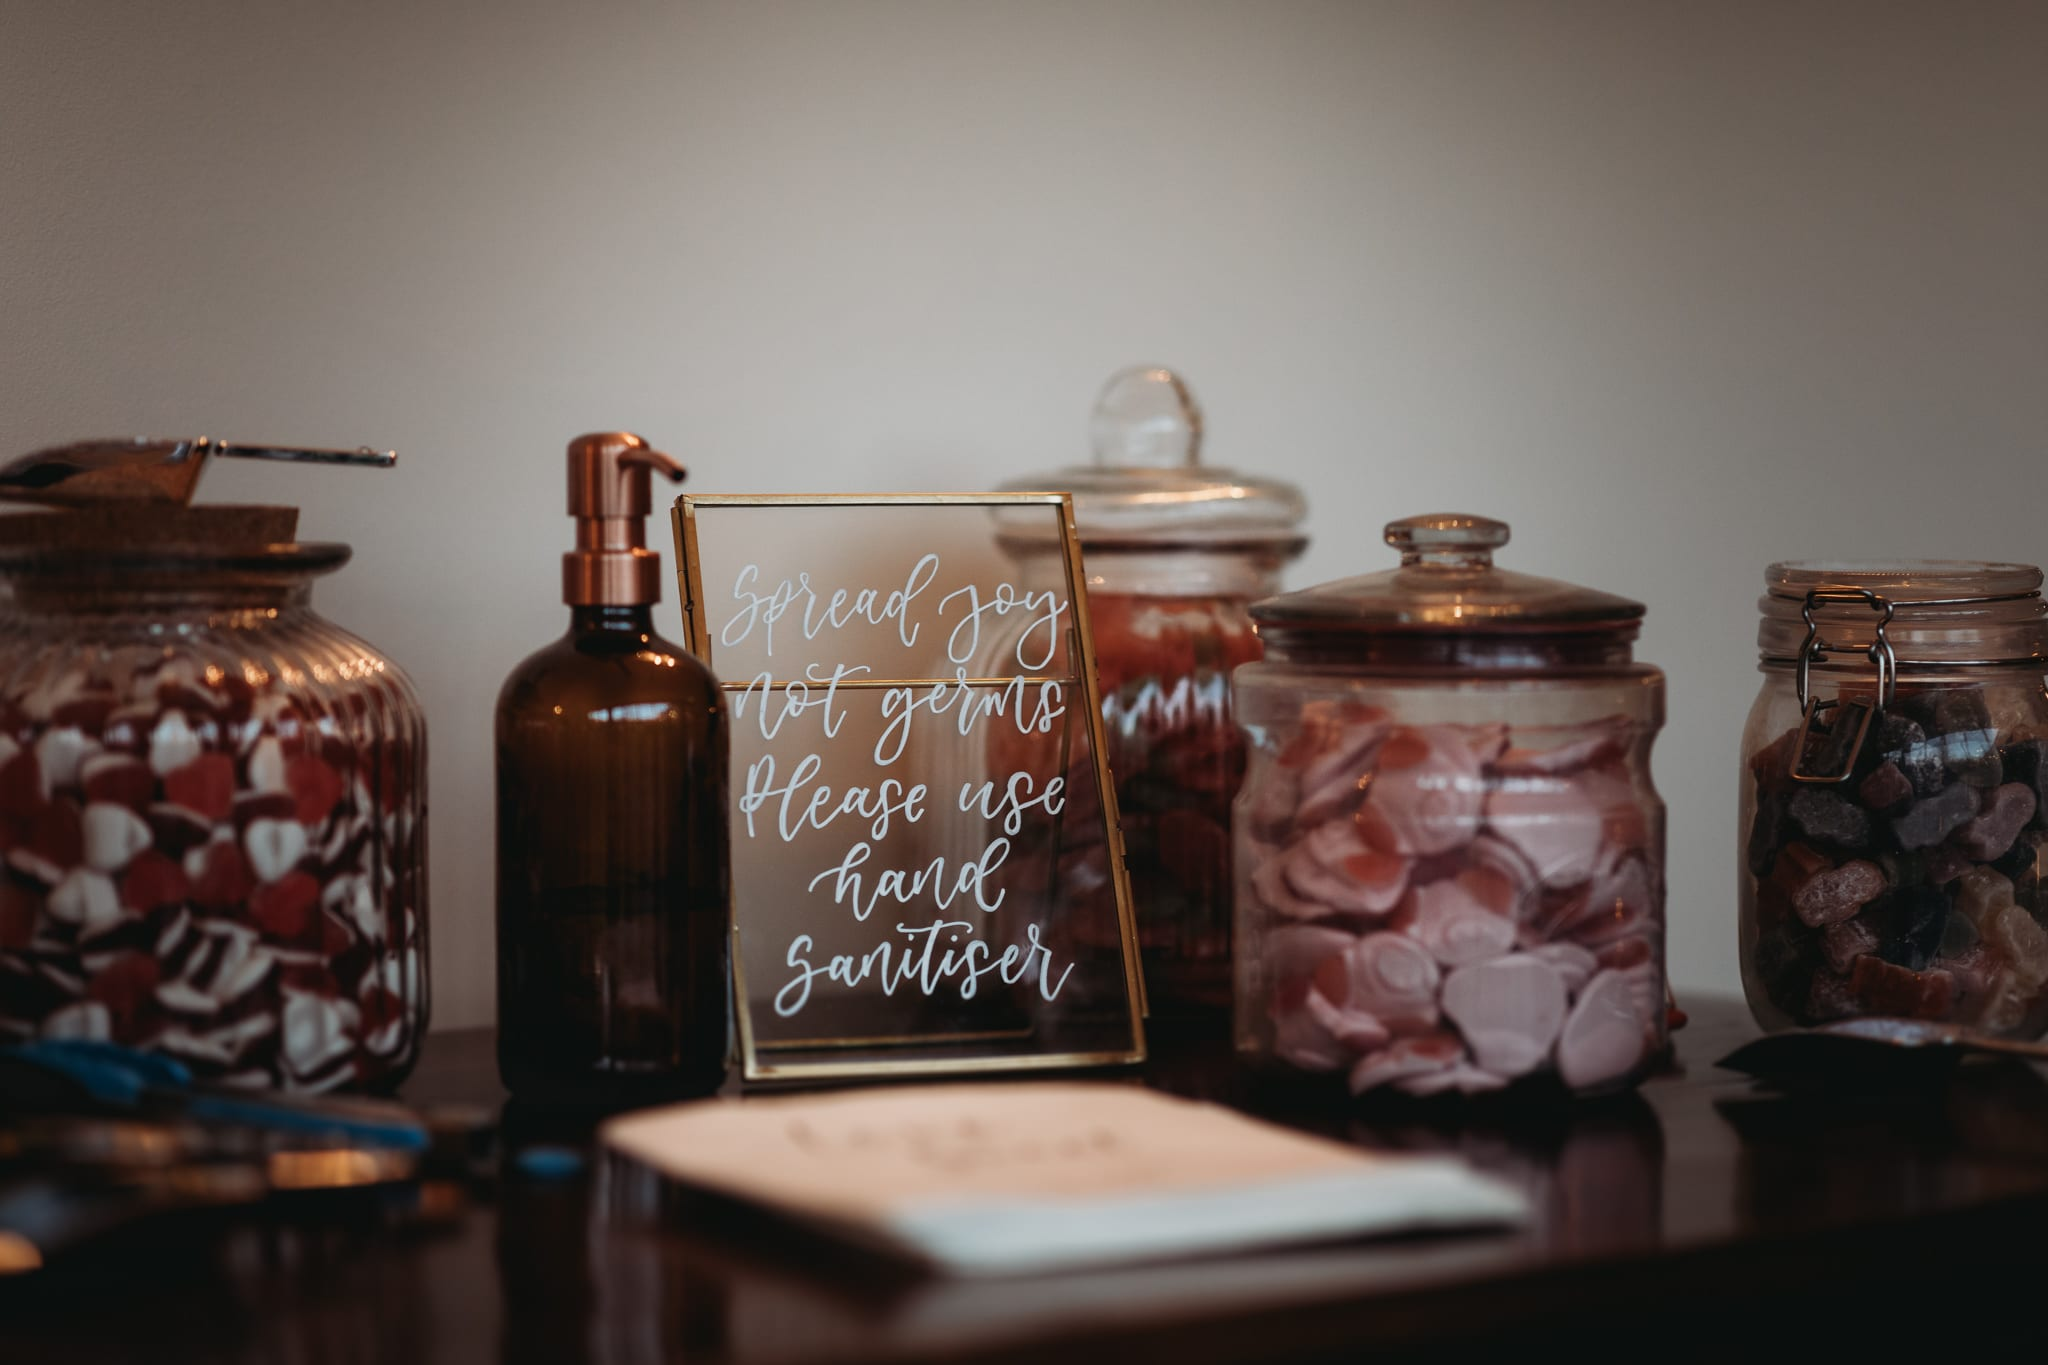 sweets table and hand sanitiser sign at Granary Estates Intimate wedding